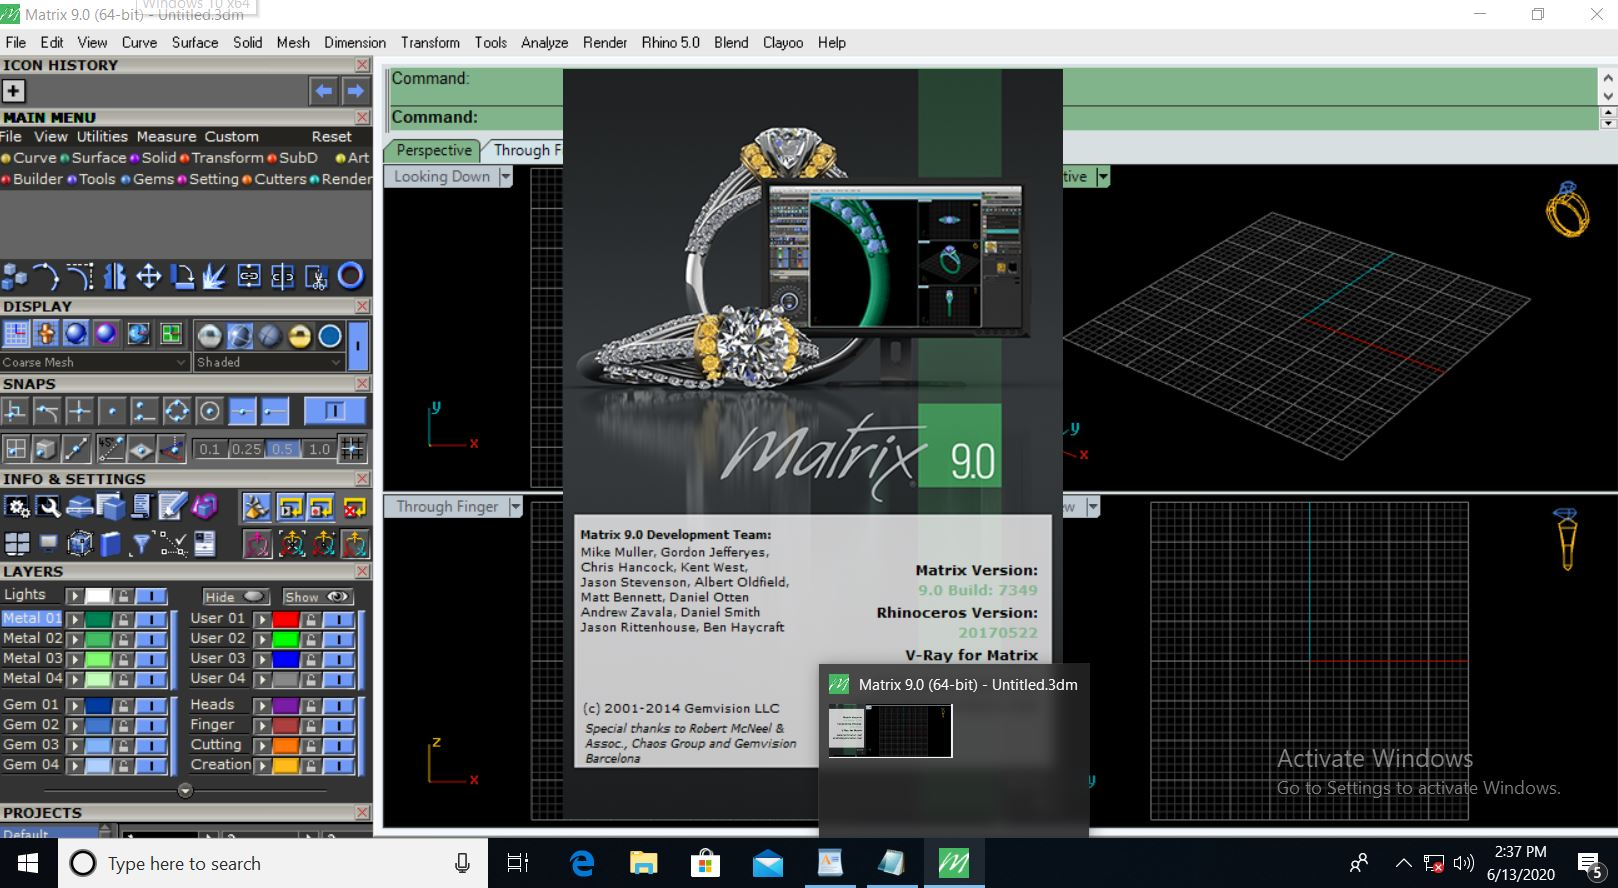 Working with Gemvision Matrix 9.0 build 7349 full license